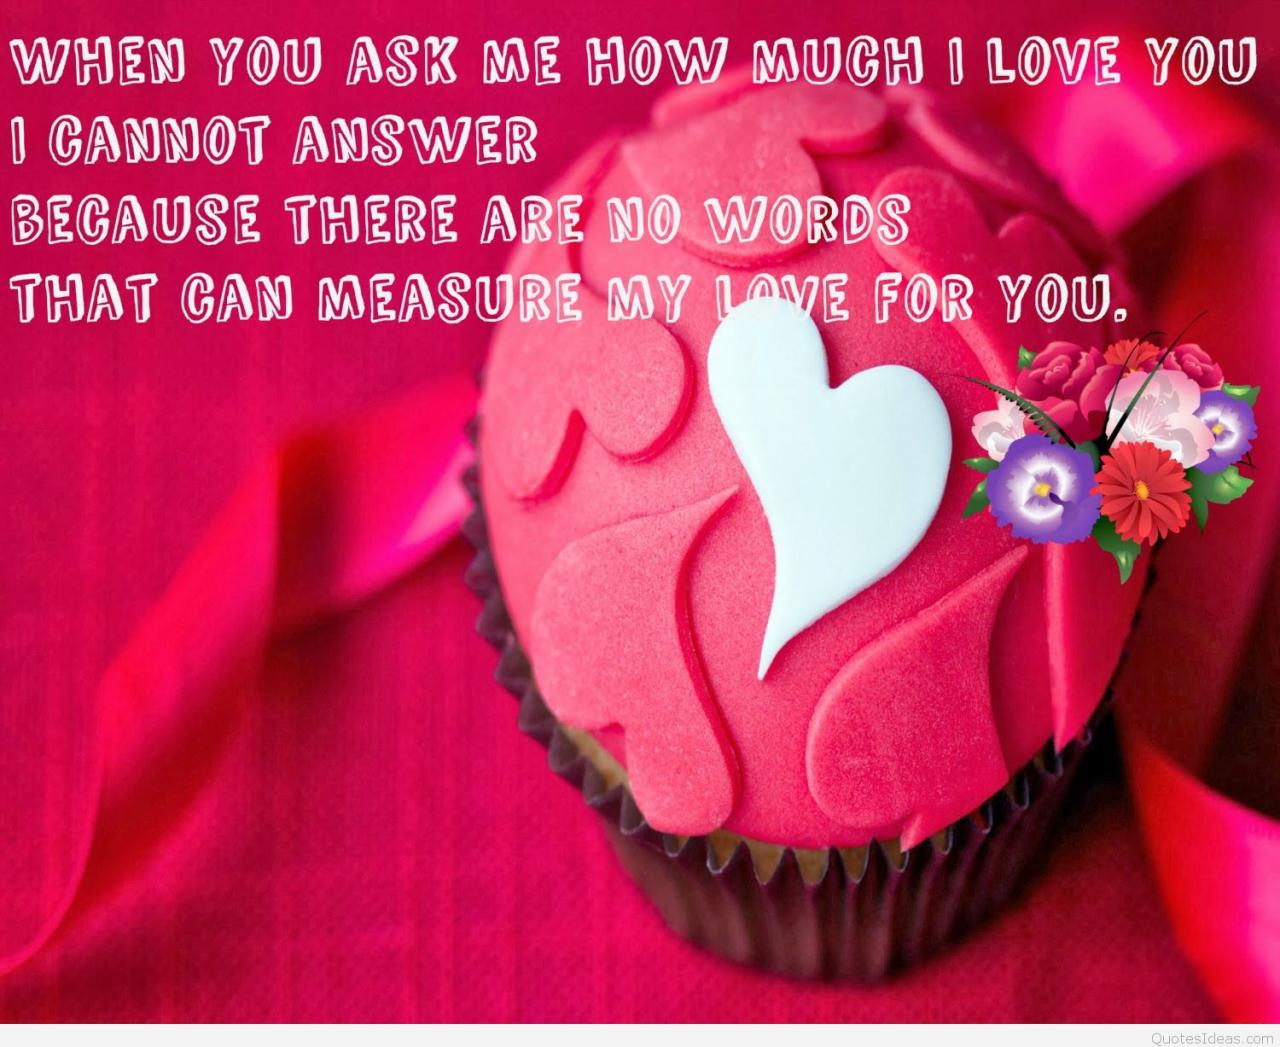 Valentines Day Quotes For Boyfriends Cute Love Quotes Your Boyfriend Valentines Day  Valentines Day Pictures